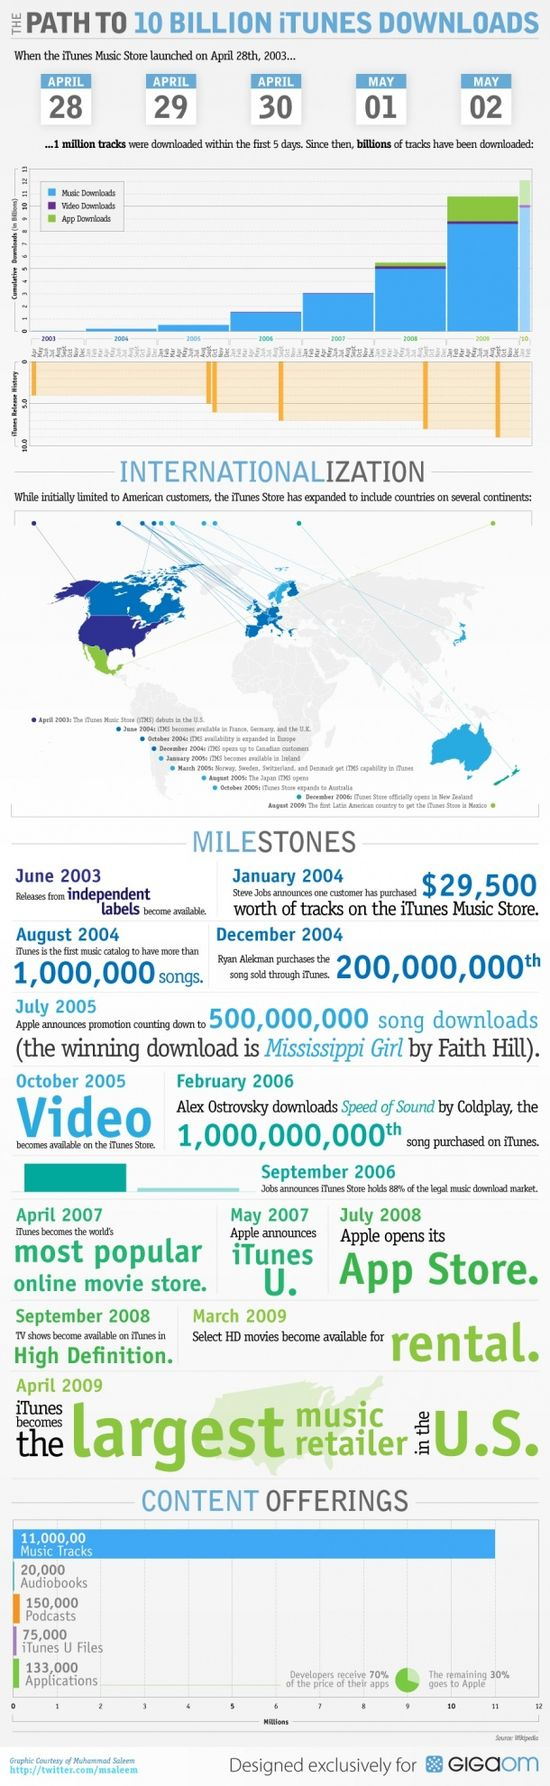 The Path To 10 Billion iTunes Downloads